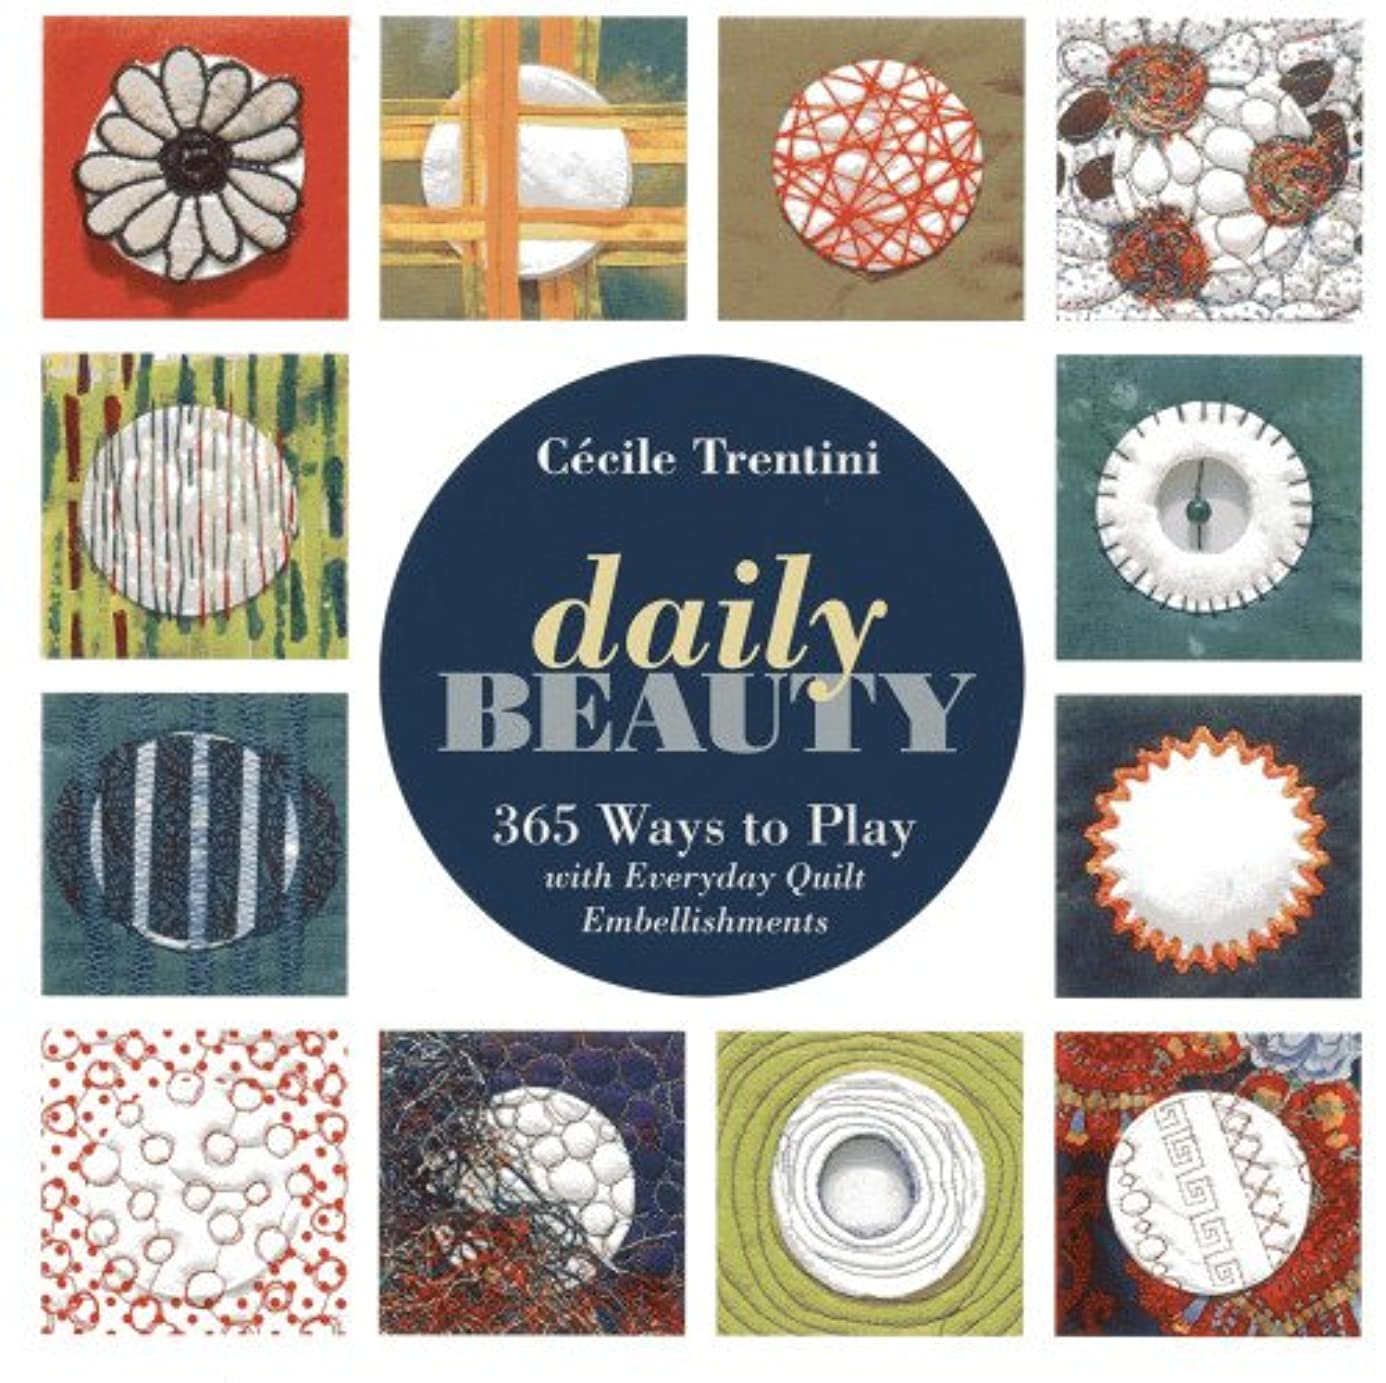 Daily Beauty: 365 Ways to Play with Everyday Quilt Embellishments pqm0750579